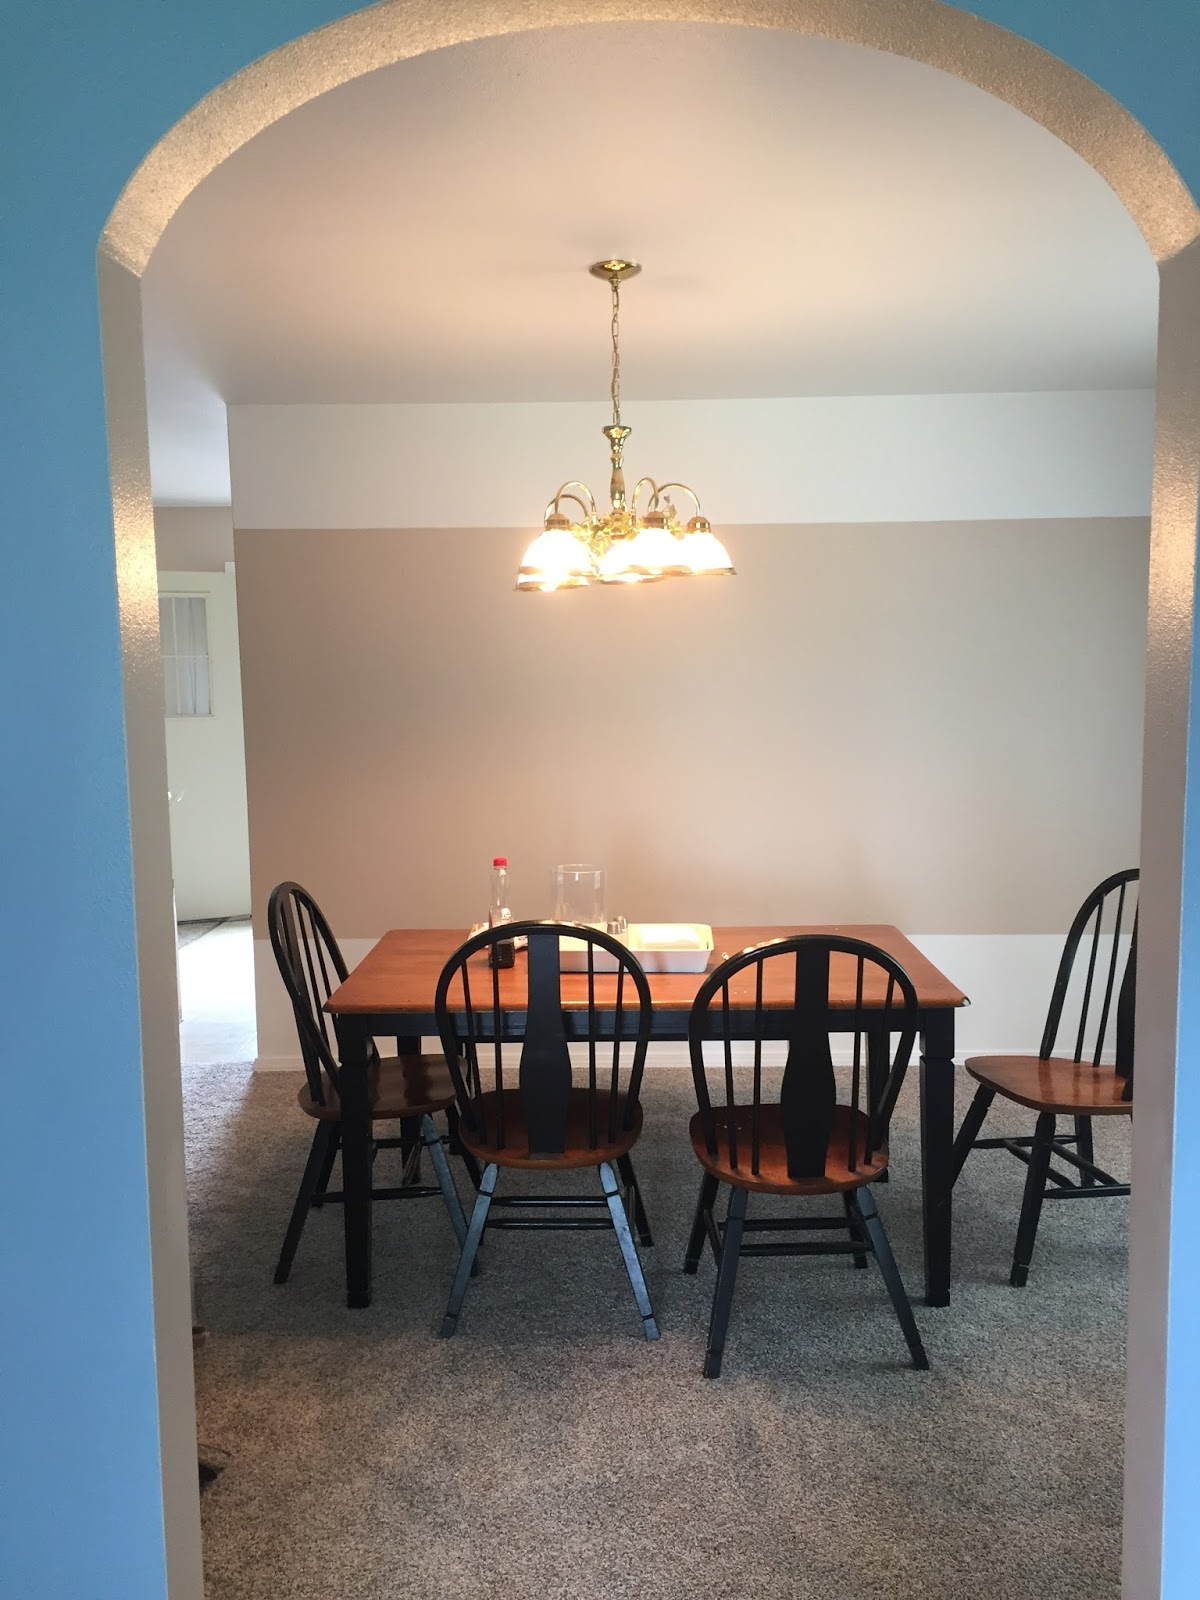 The Cons For Us Were Carpet In Dining Room I Guess Messy People And Paint Color Light Fixture Dated Not My Style